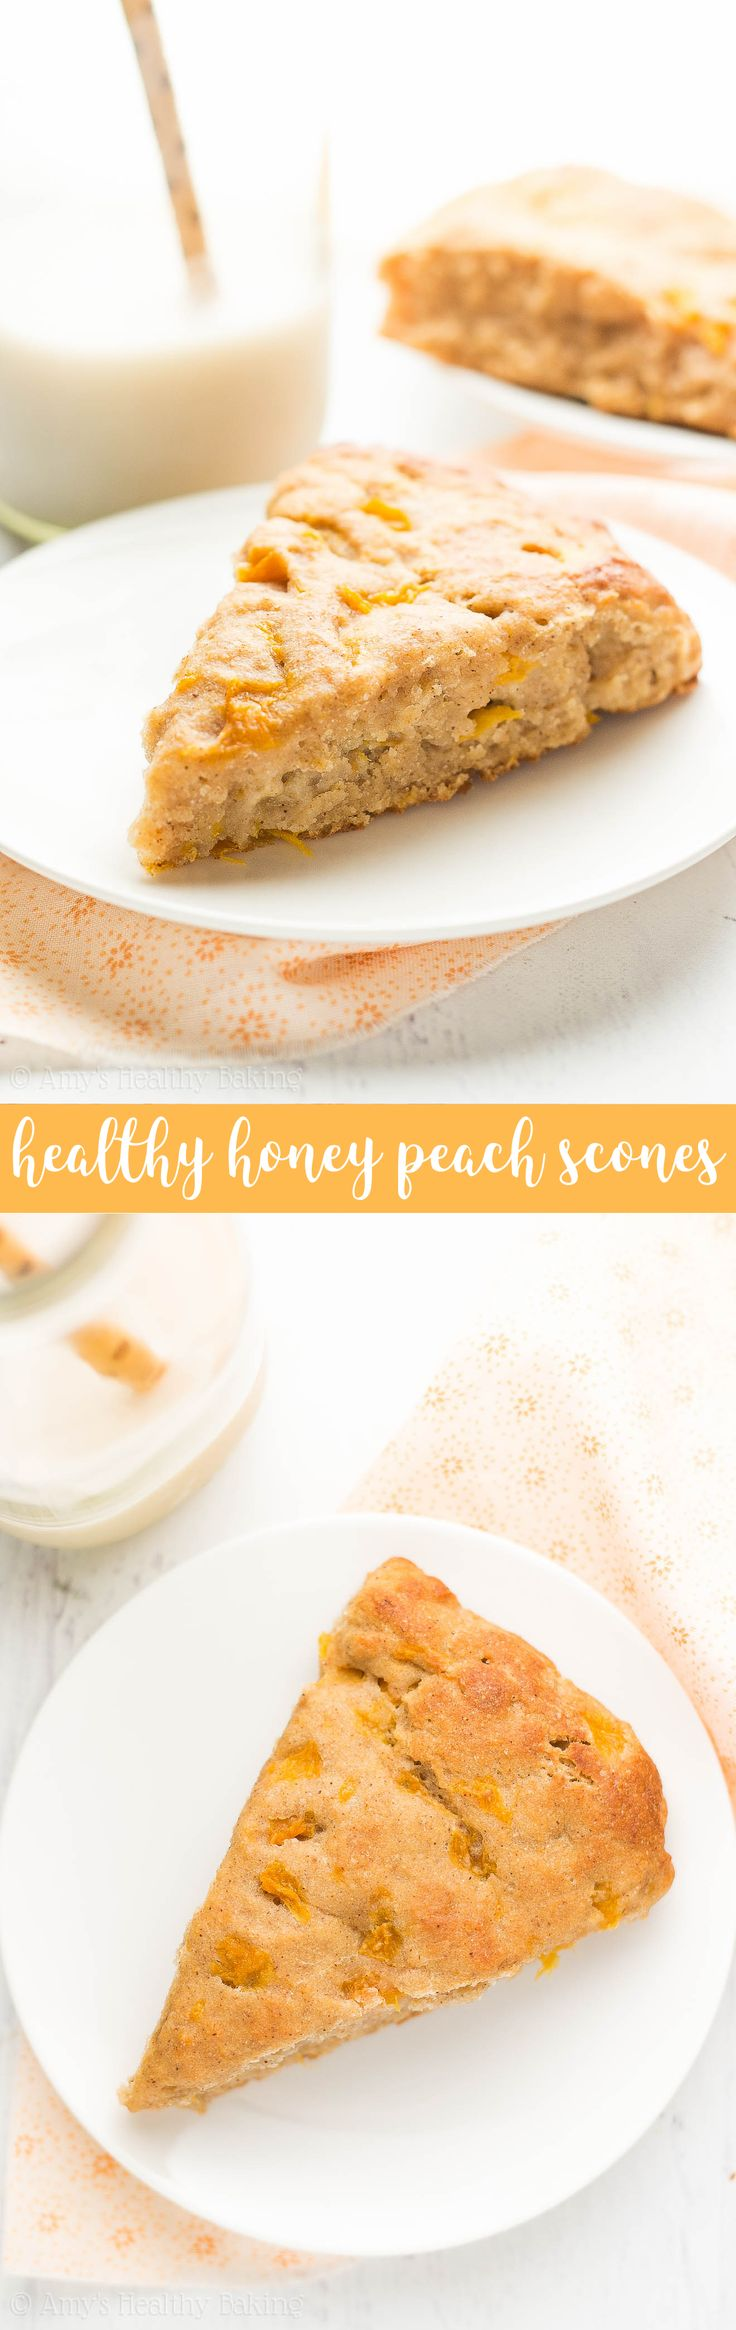 {HEALTHY} Honey Peach Scones -- ready in 30 min & only 141 calories! Perfectly tender & so easy to make. The definition of summer breakfast perfection!